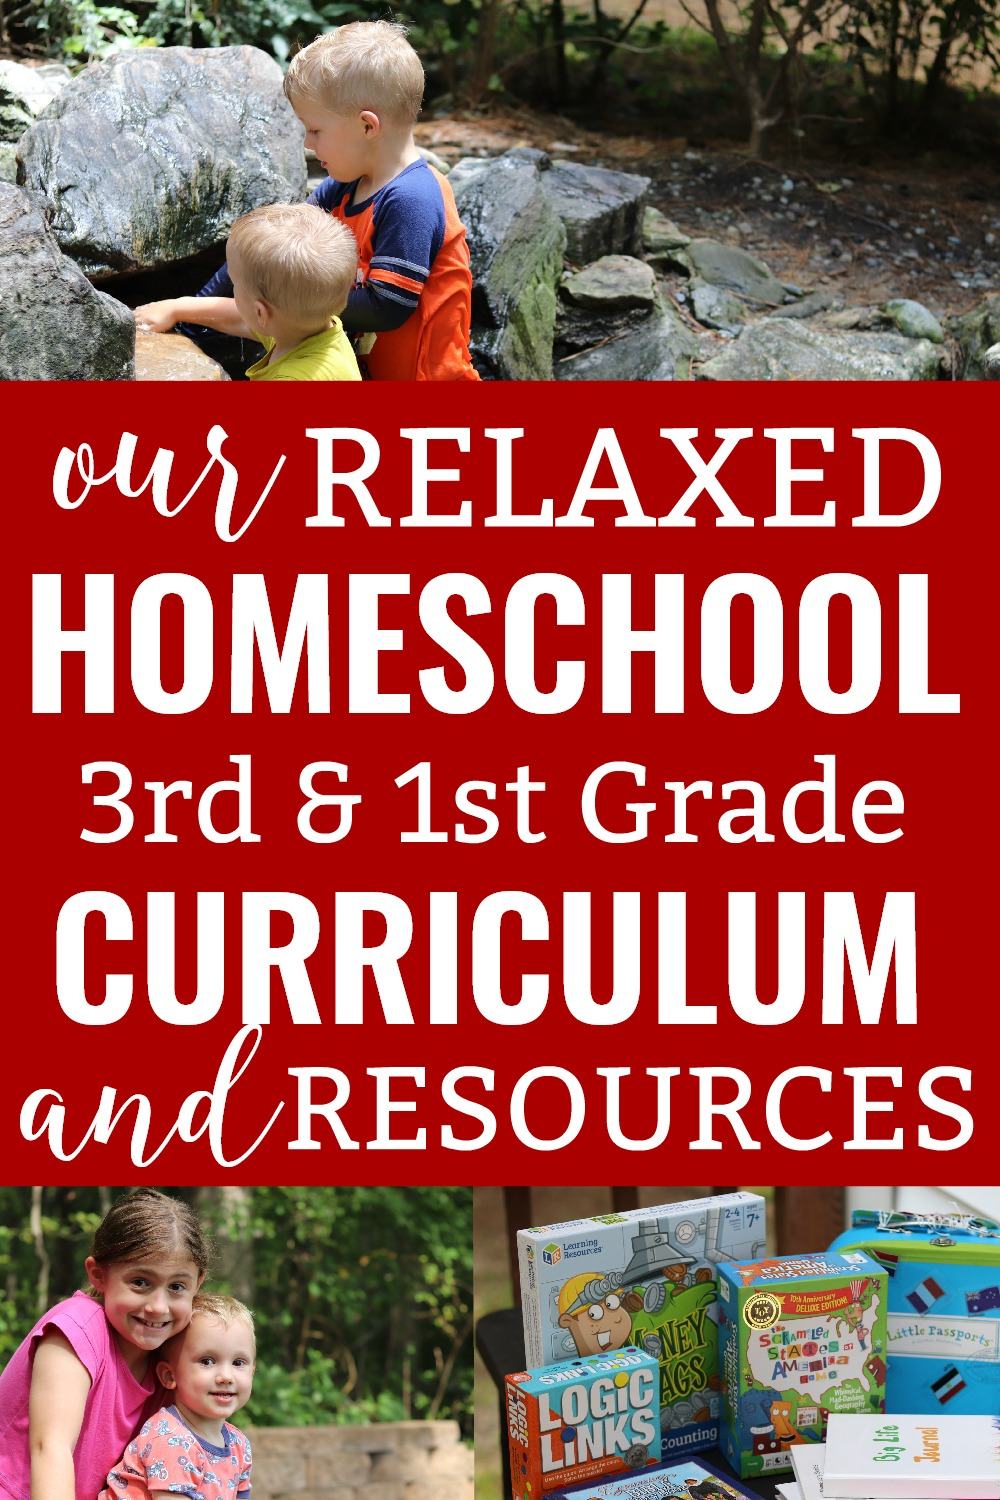 Homeschooling third grade or first grade? Get ideas for homeschool curriculum and additional resources you can use in your relaxed homeschool!